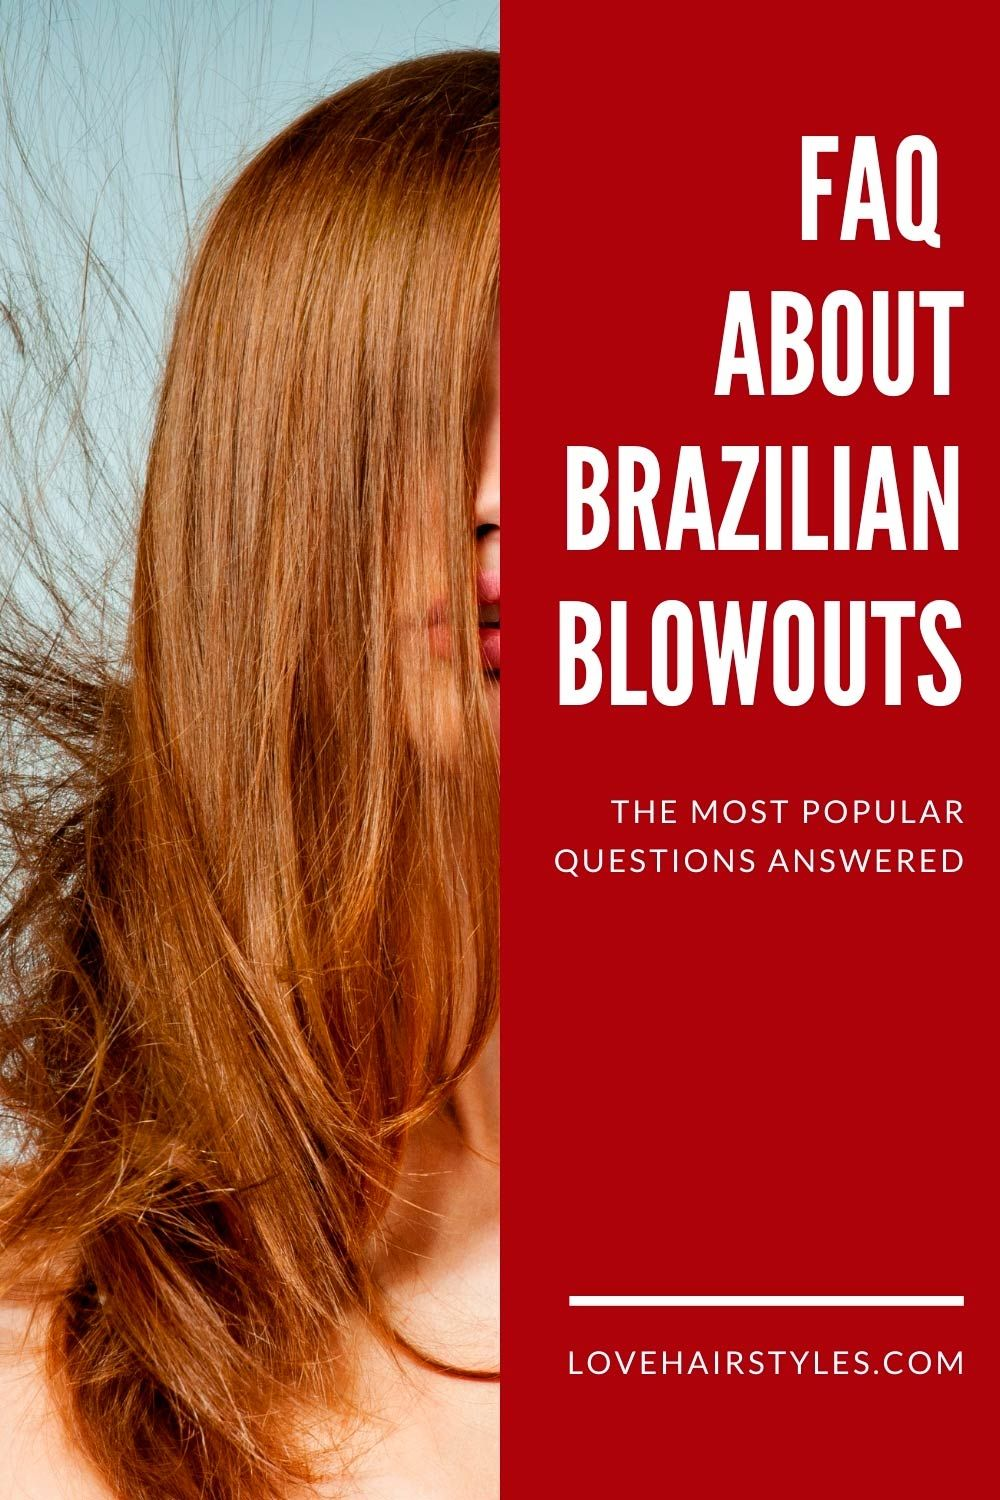 FAQ About Brazilian Blowouts